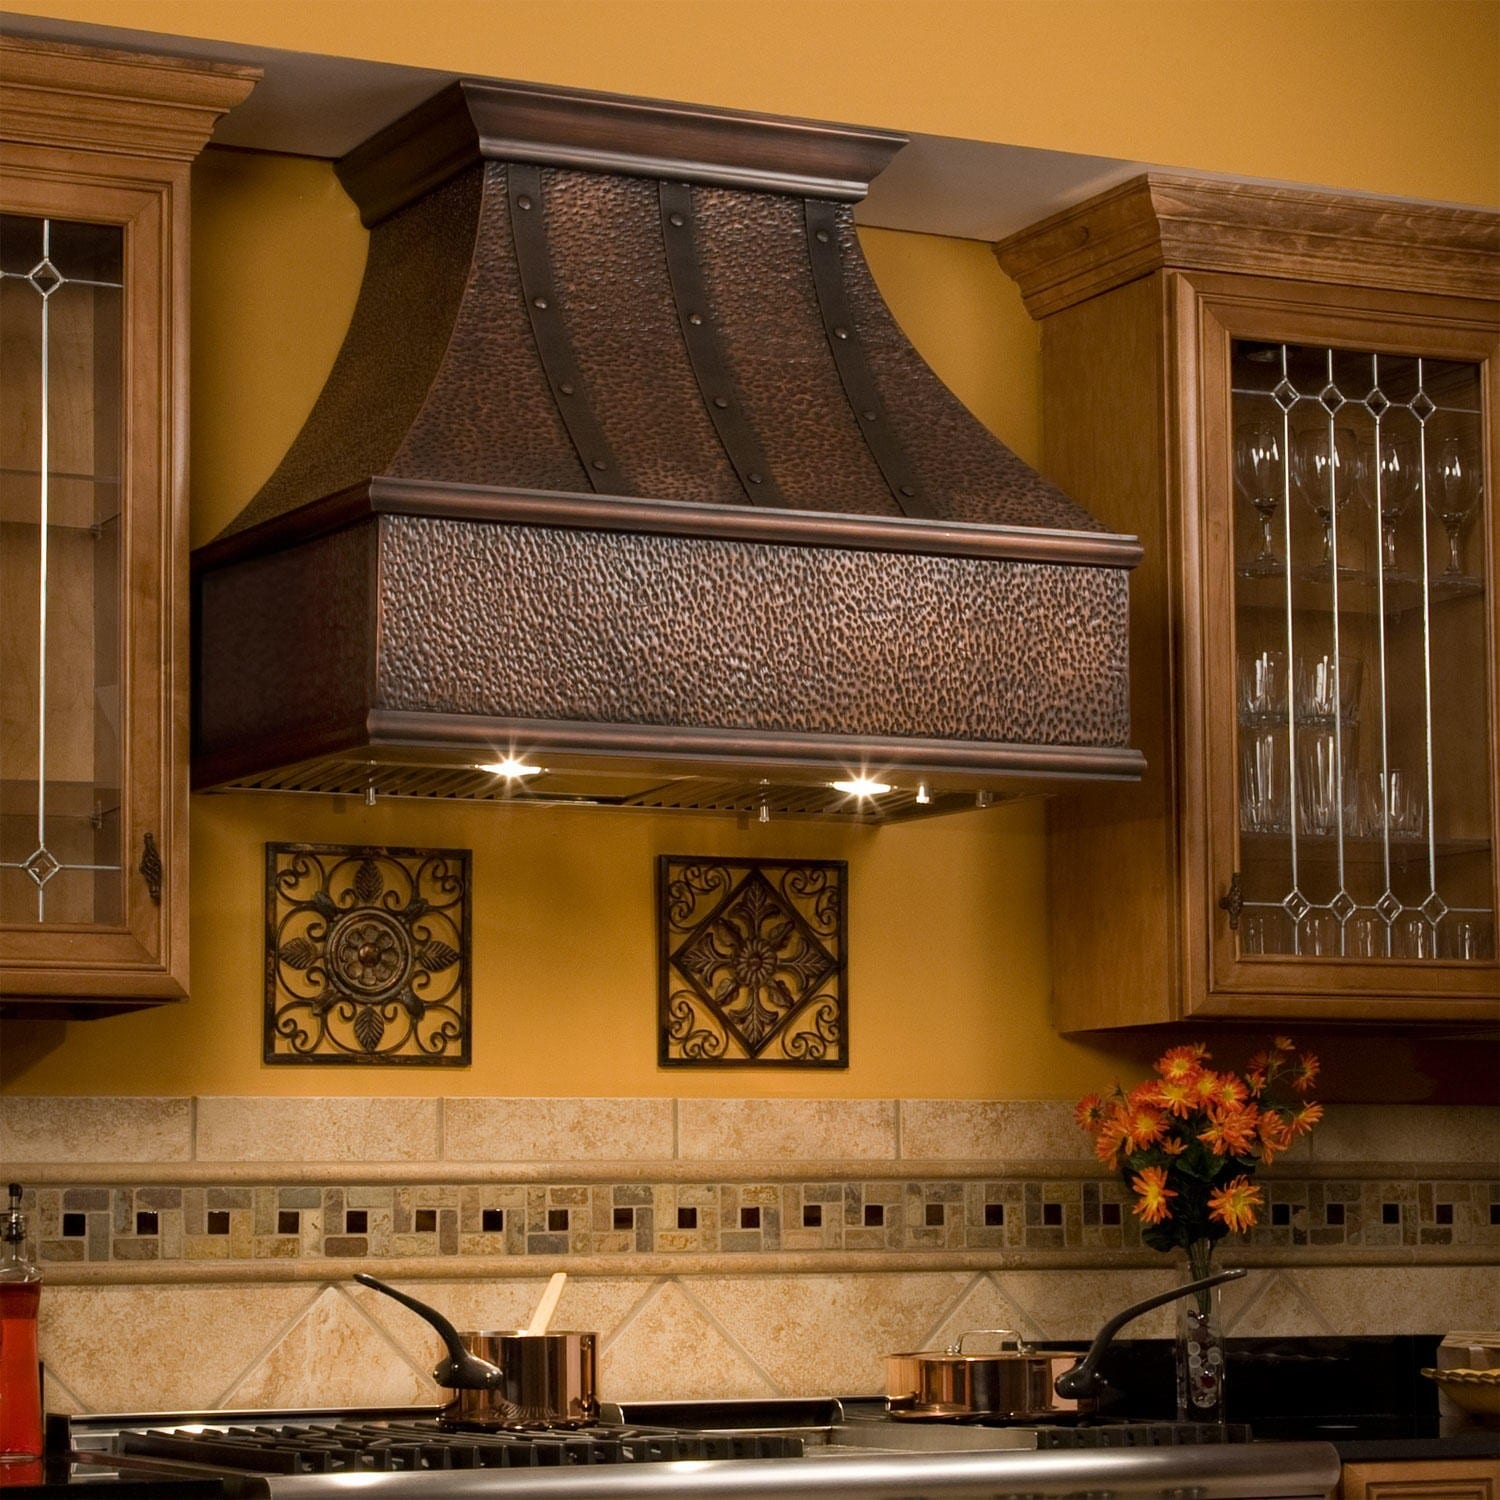 ash kitchen cabinets with Why A Range Hood on Wooden Vehicles And Traffic Signs Set Of 15 in addition Kitchen White Modern moreover Affordable Modern Furniture also Pvc Wall Paneling Hpd378 also Laminated Birch Ply Panels.